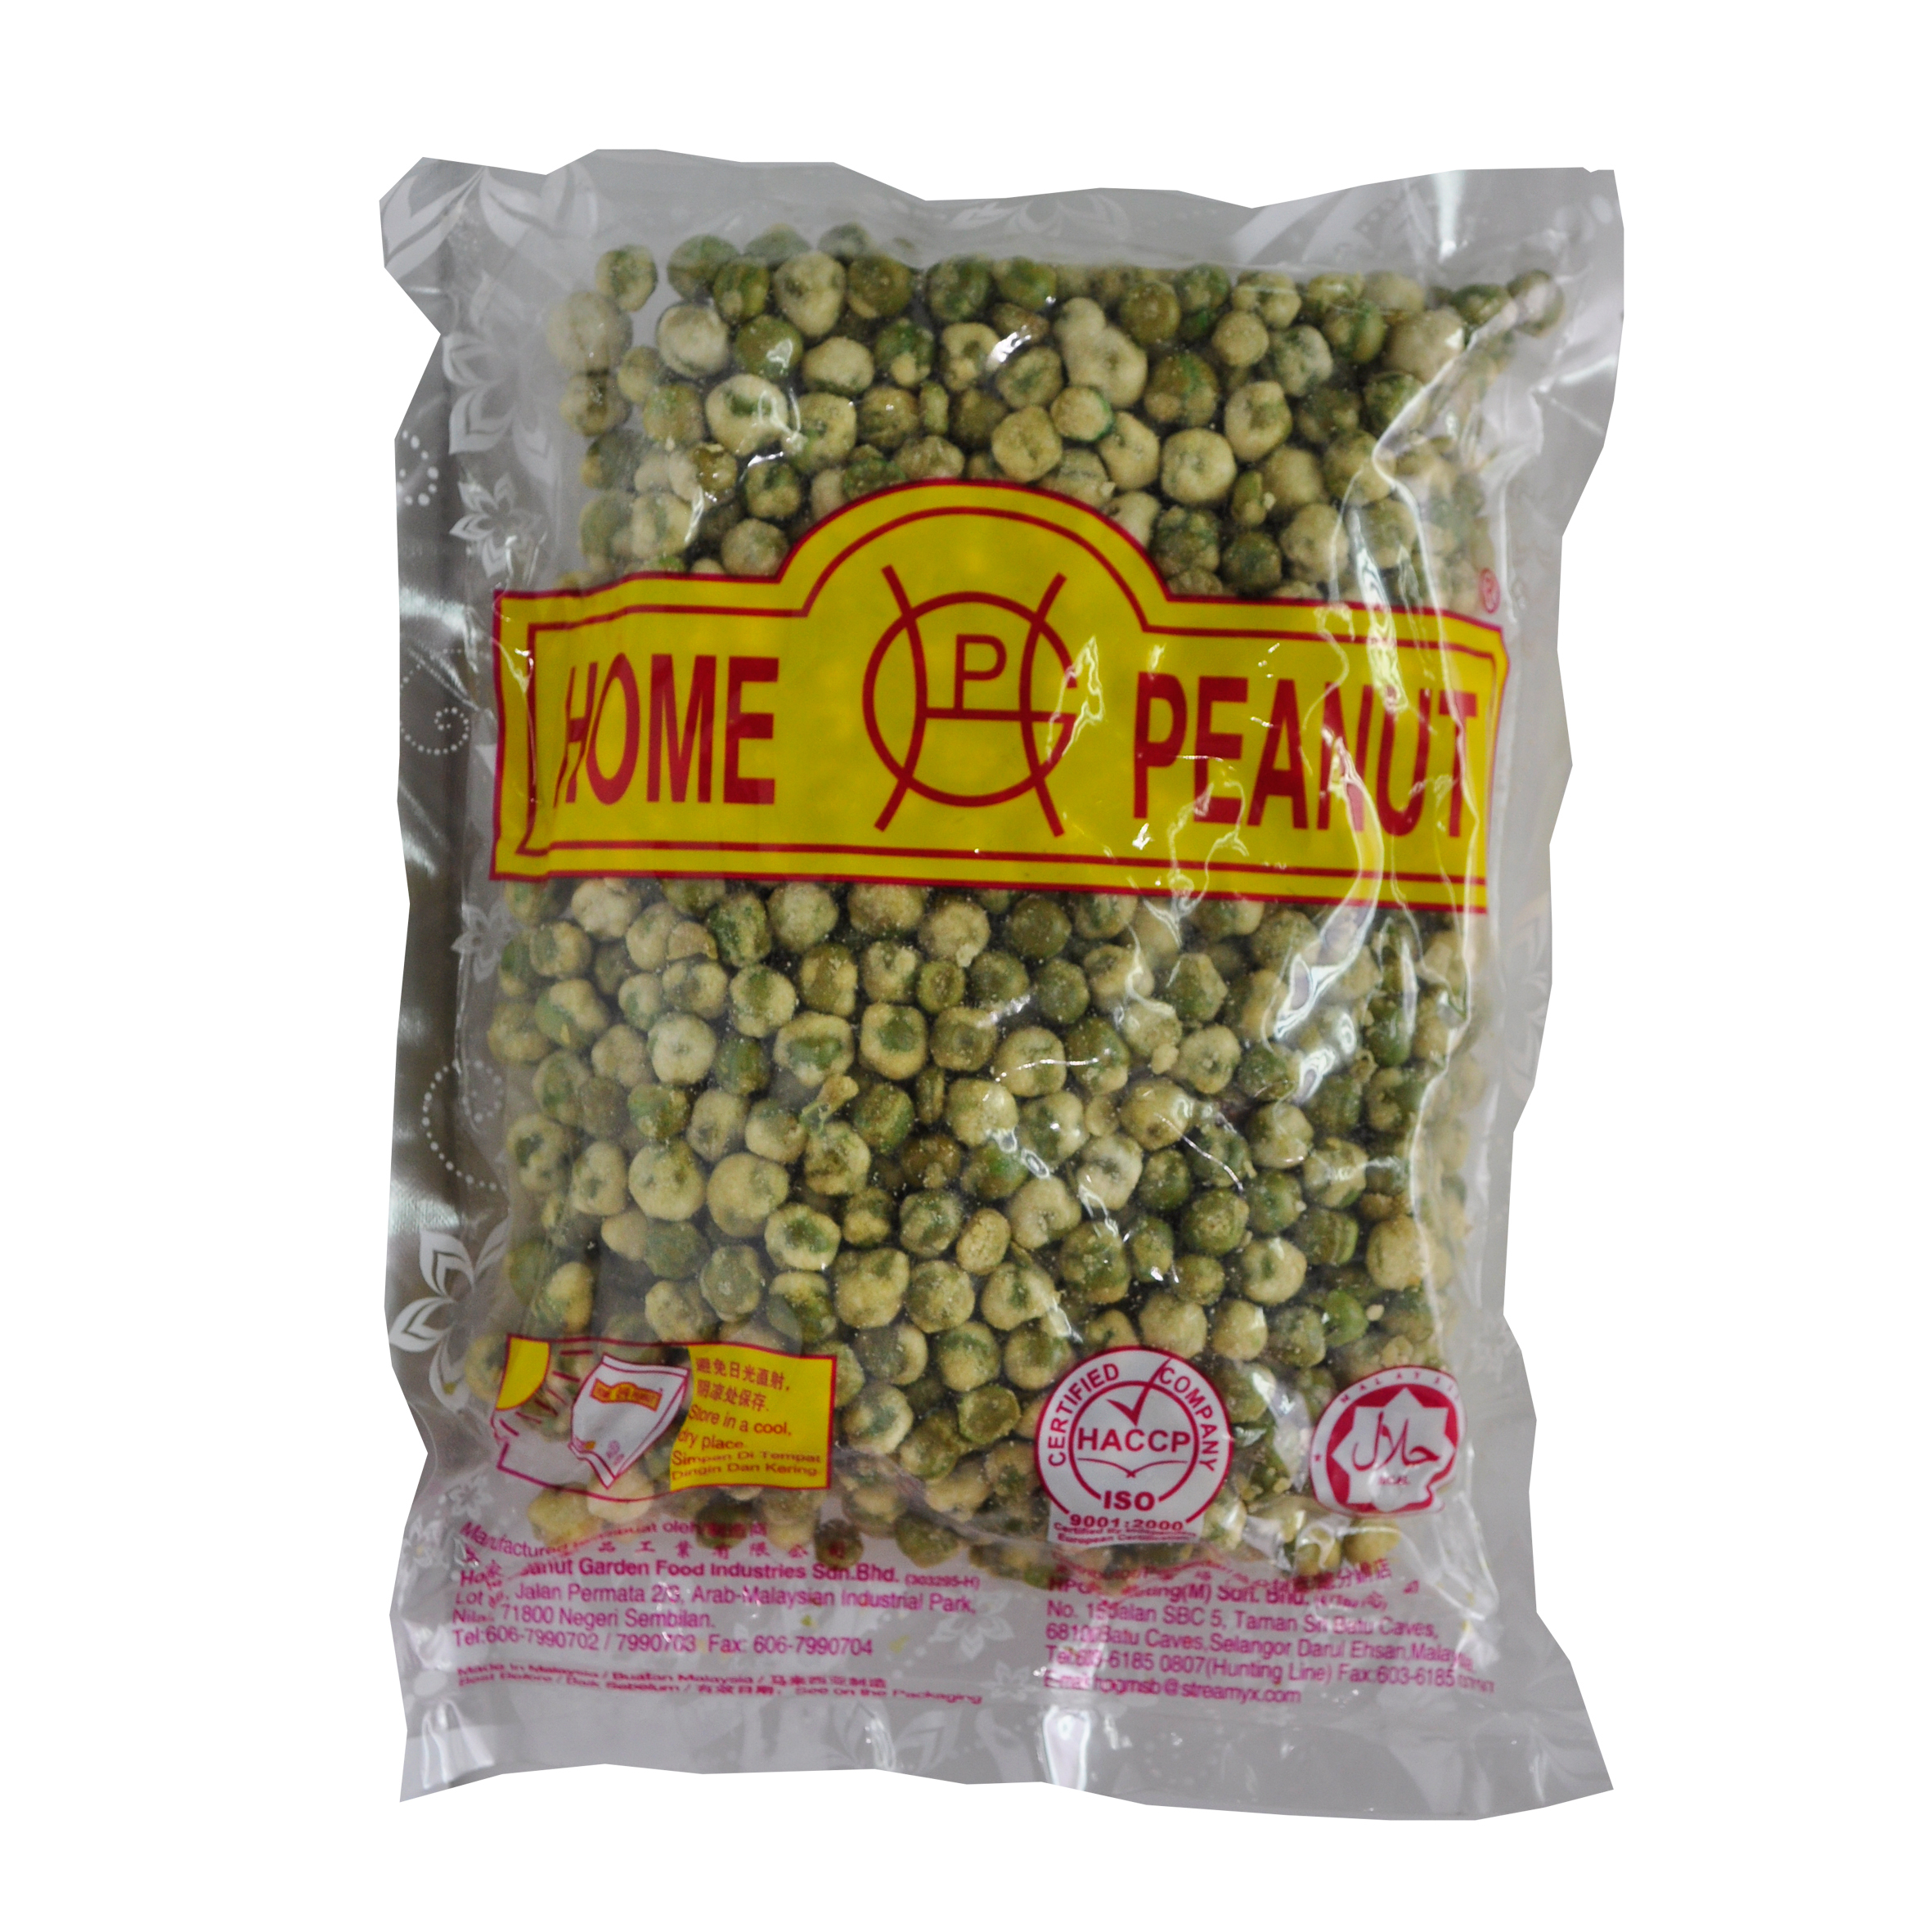 Coated Green Peas Front 350g.jpg